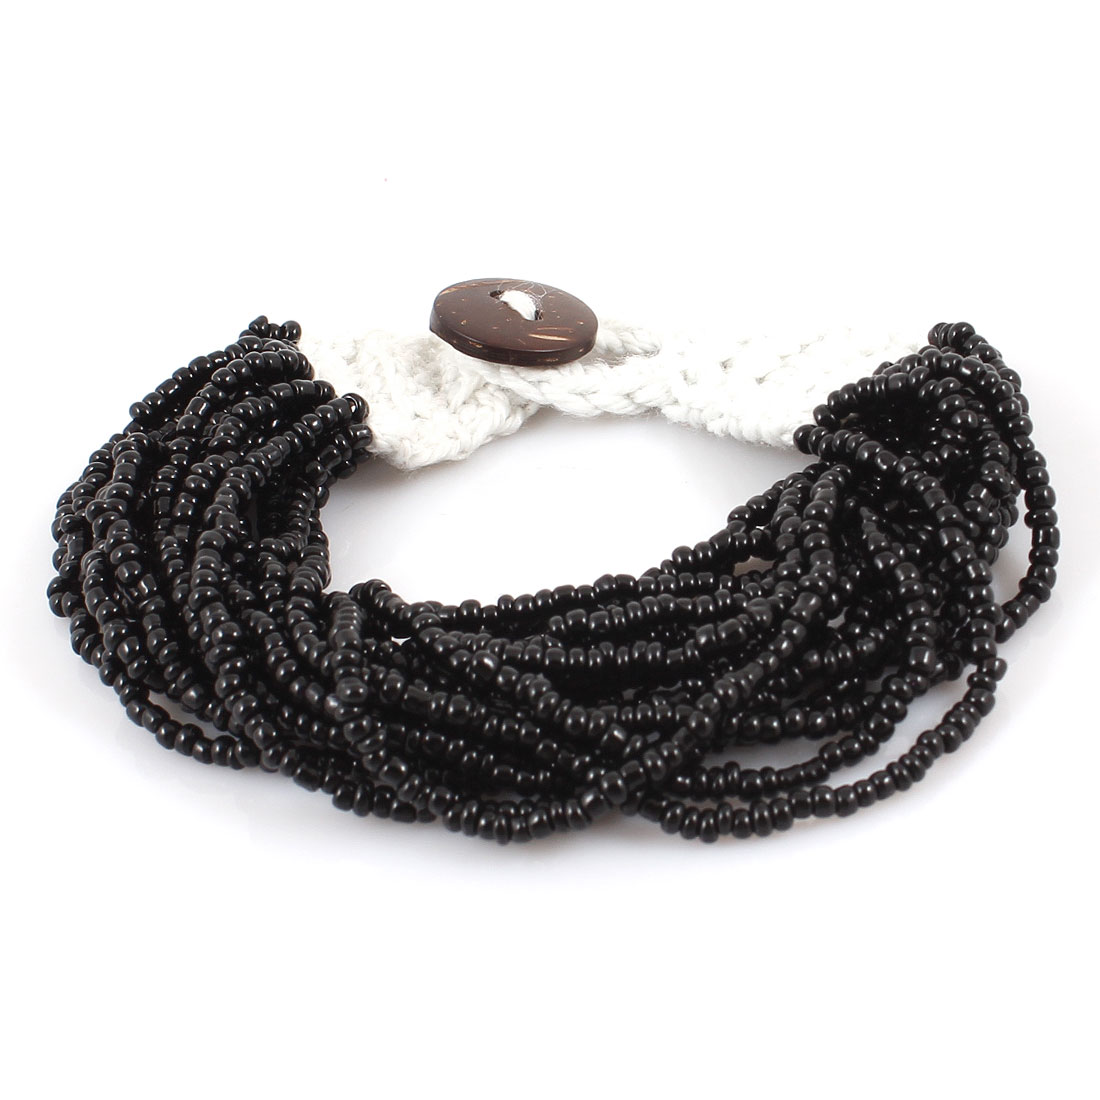 Multilayers String Braided Black Beads Button Closure Wrist Bracelet Bangle